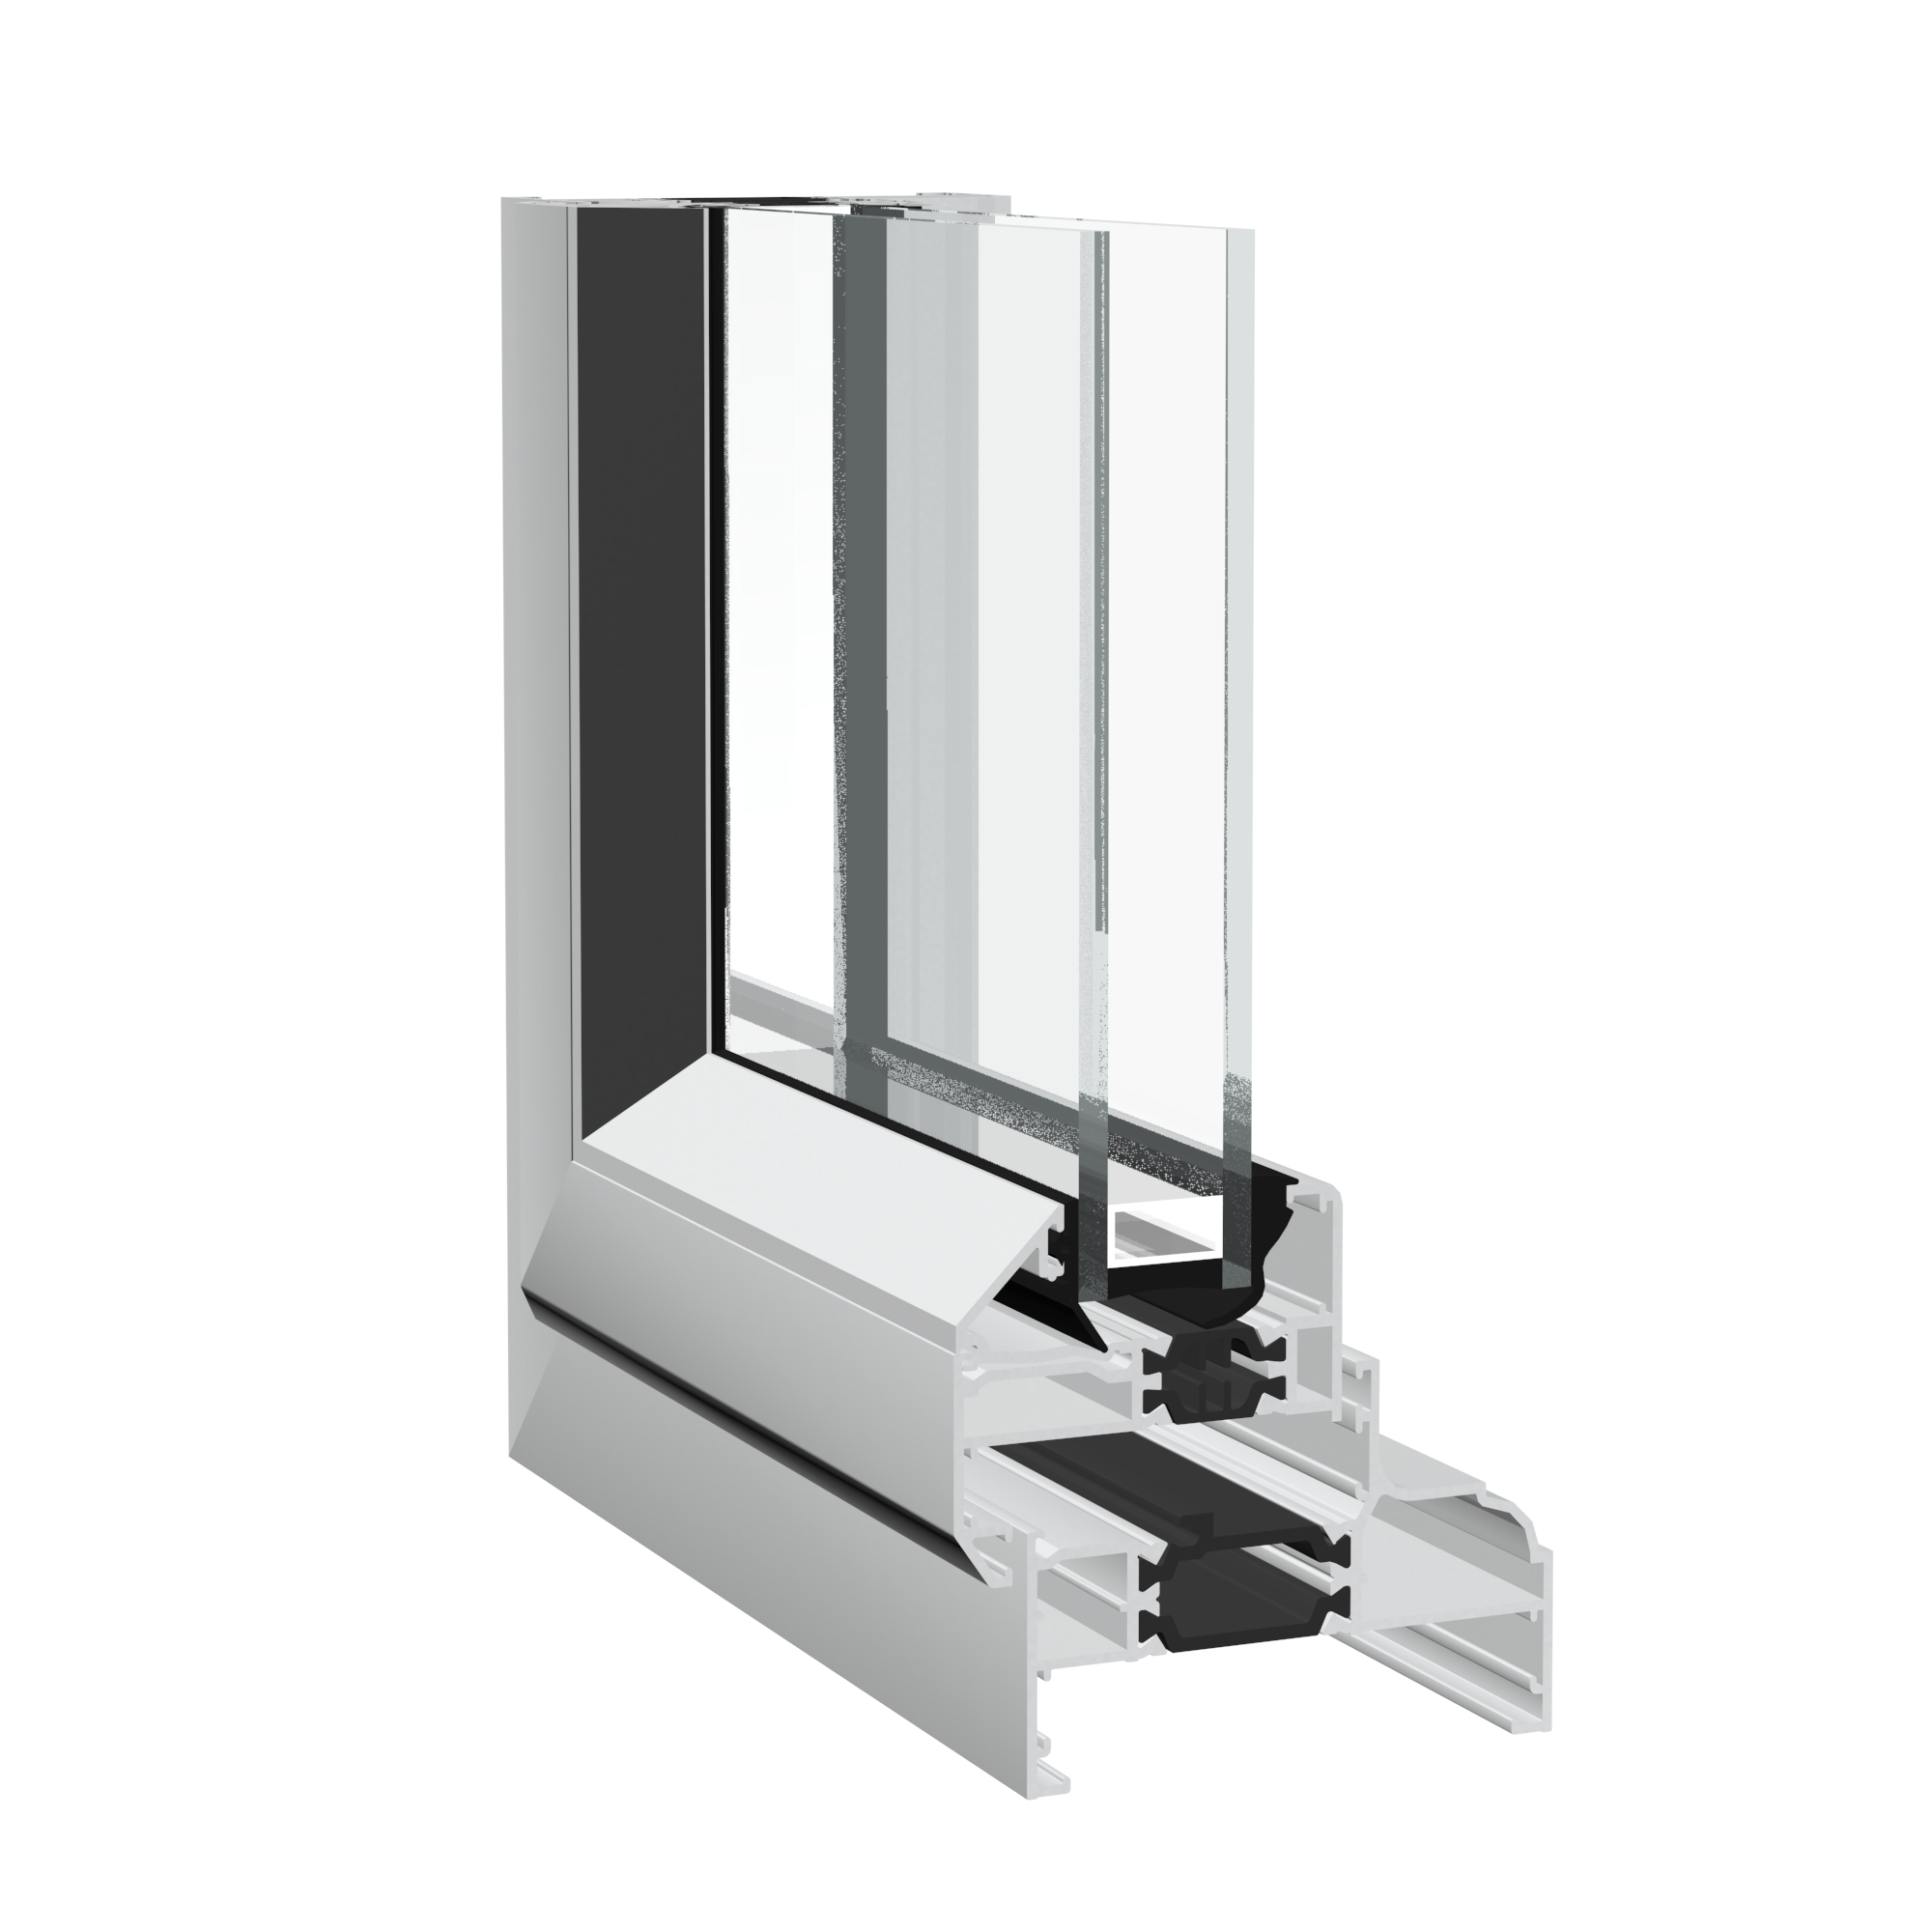 Crown aluminium casement window from Sapa